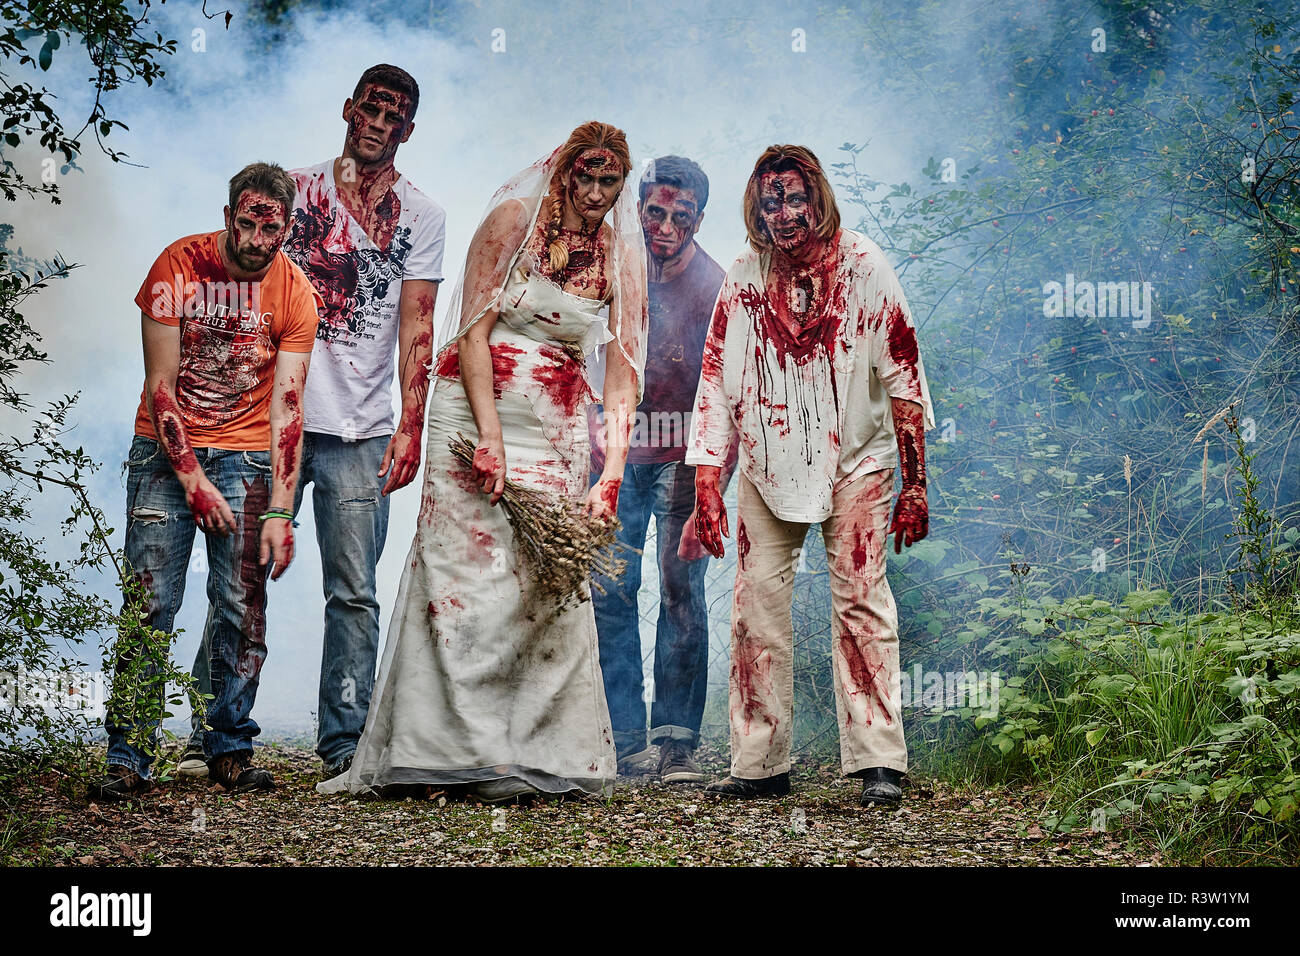 Zombie Gruppe - Stock Image